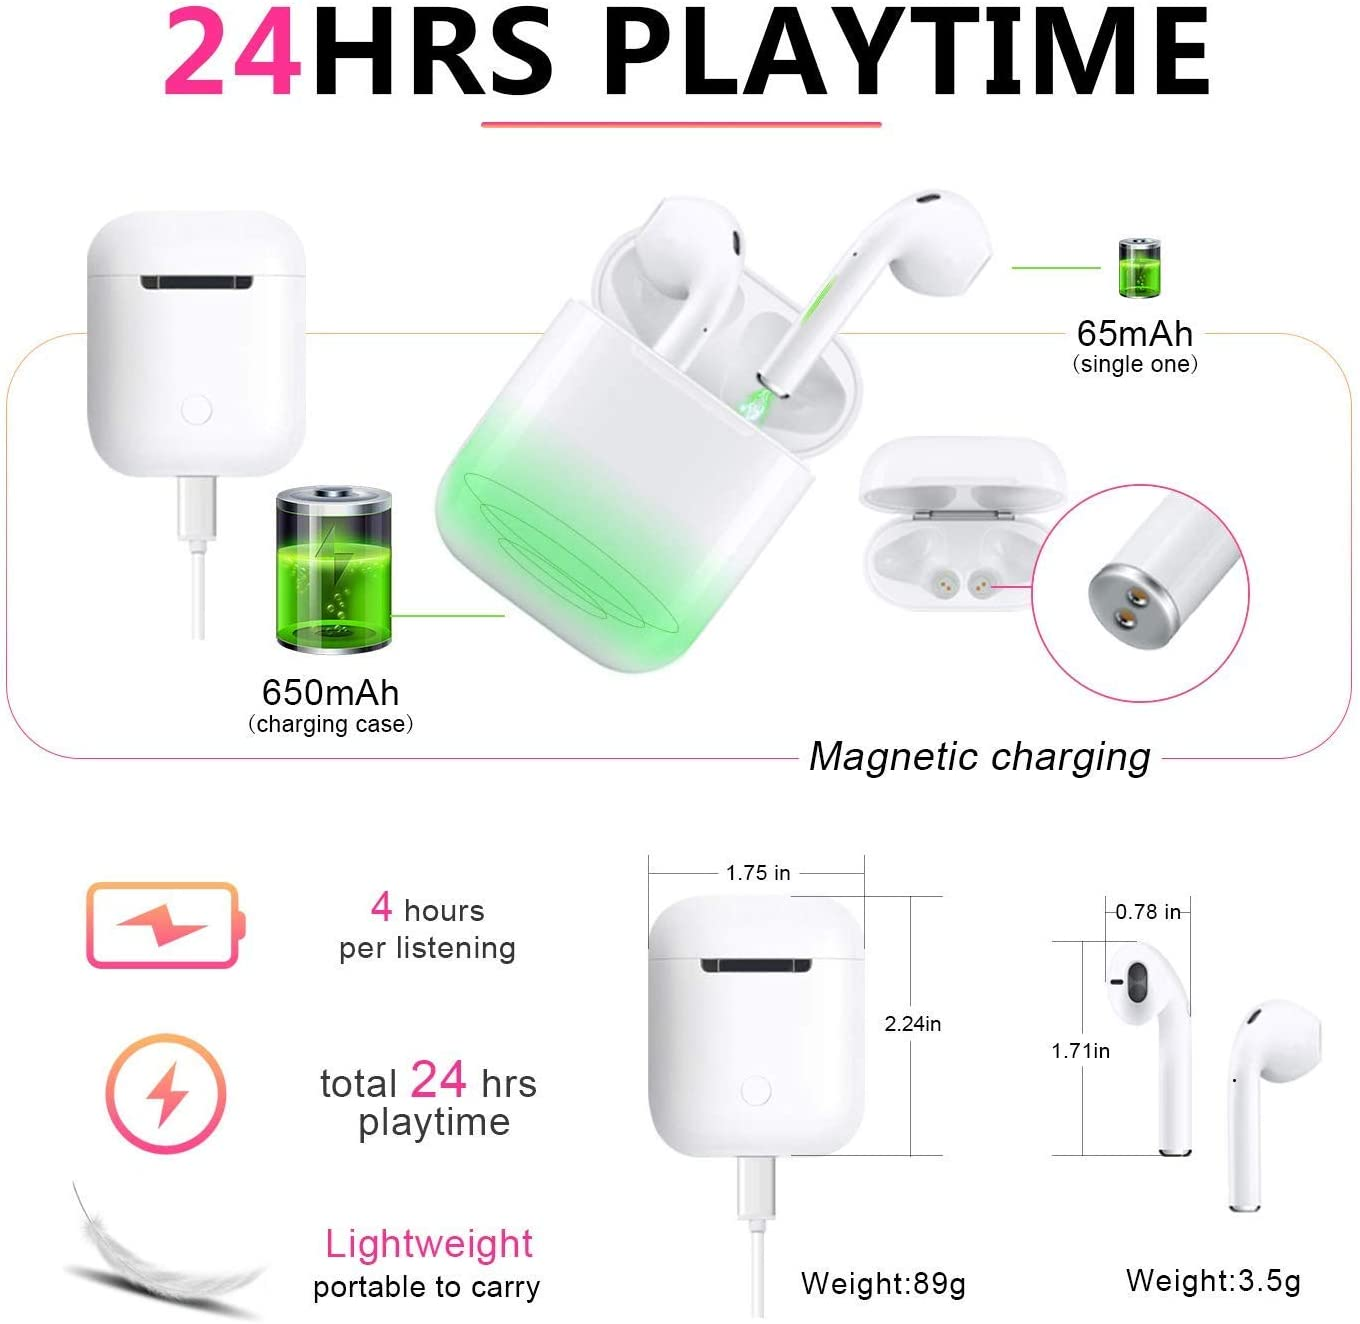 3D Stereo 24H Cycle Playtime in-Ear Wireless Headphones TWS Wireless Earbud Headphones with Charging Case Compatible with Running // airpods //Android // iPhone Bluetooth Wireless Earbuds